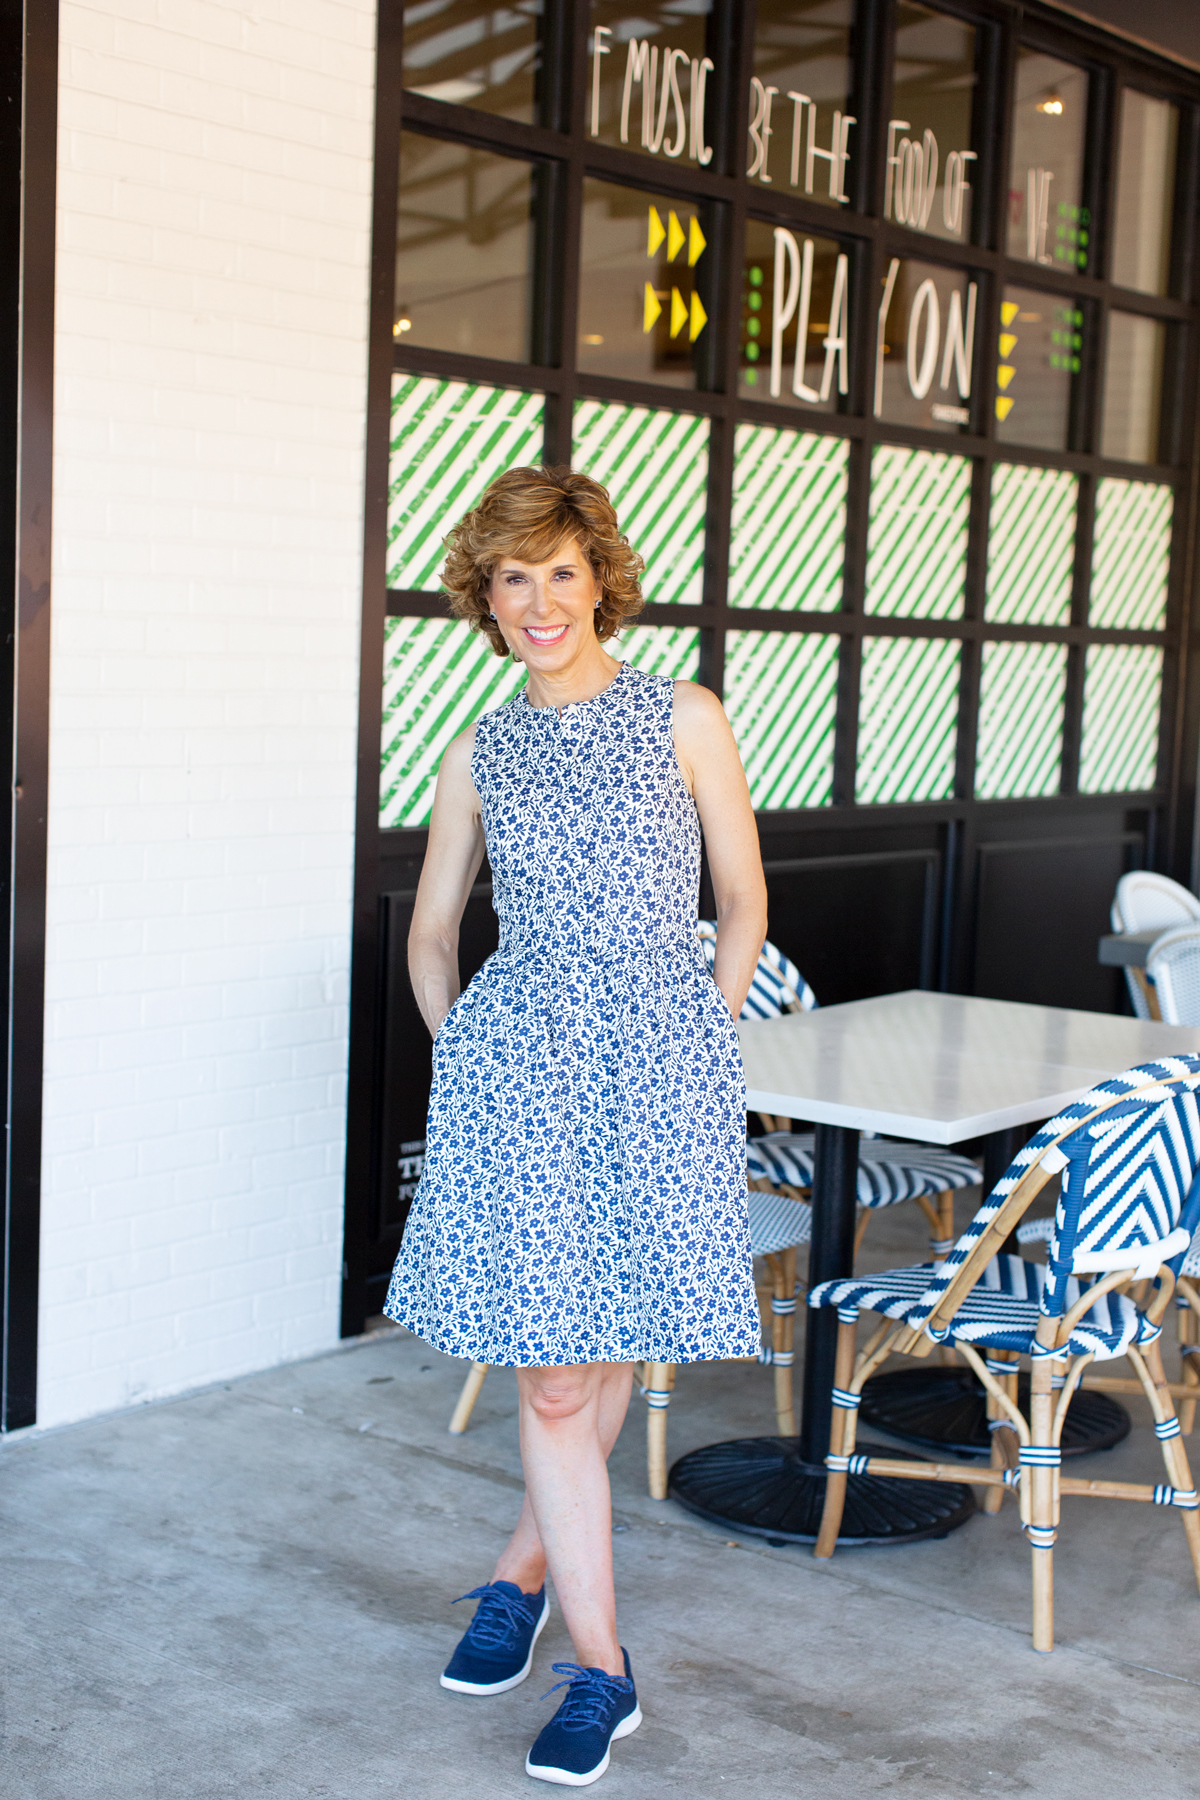 woman in blue floral dress on a restaurant patio